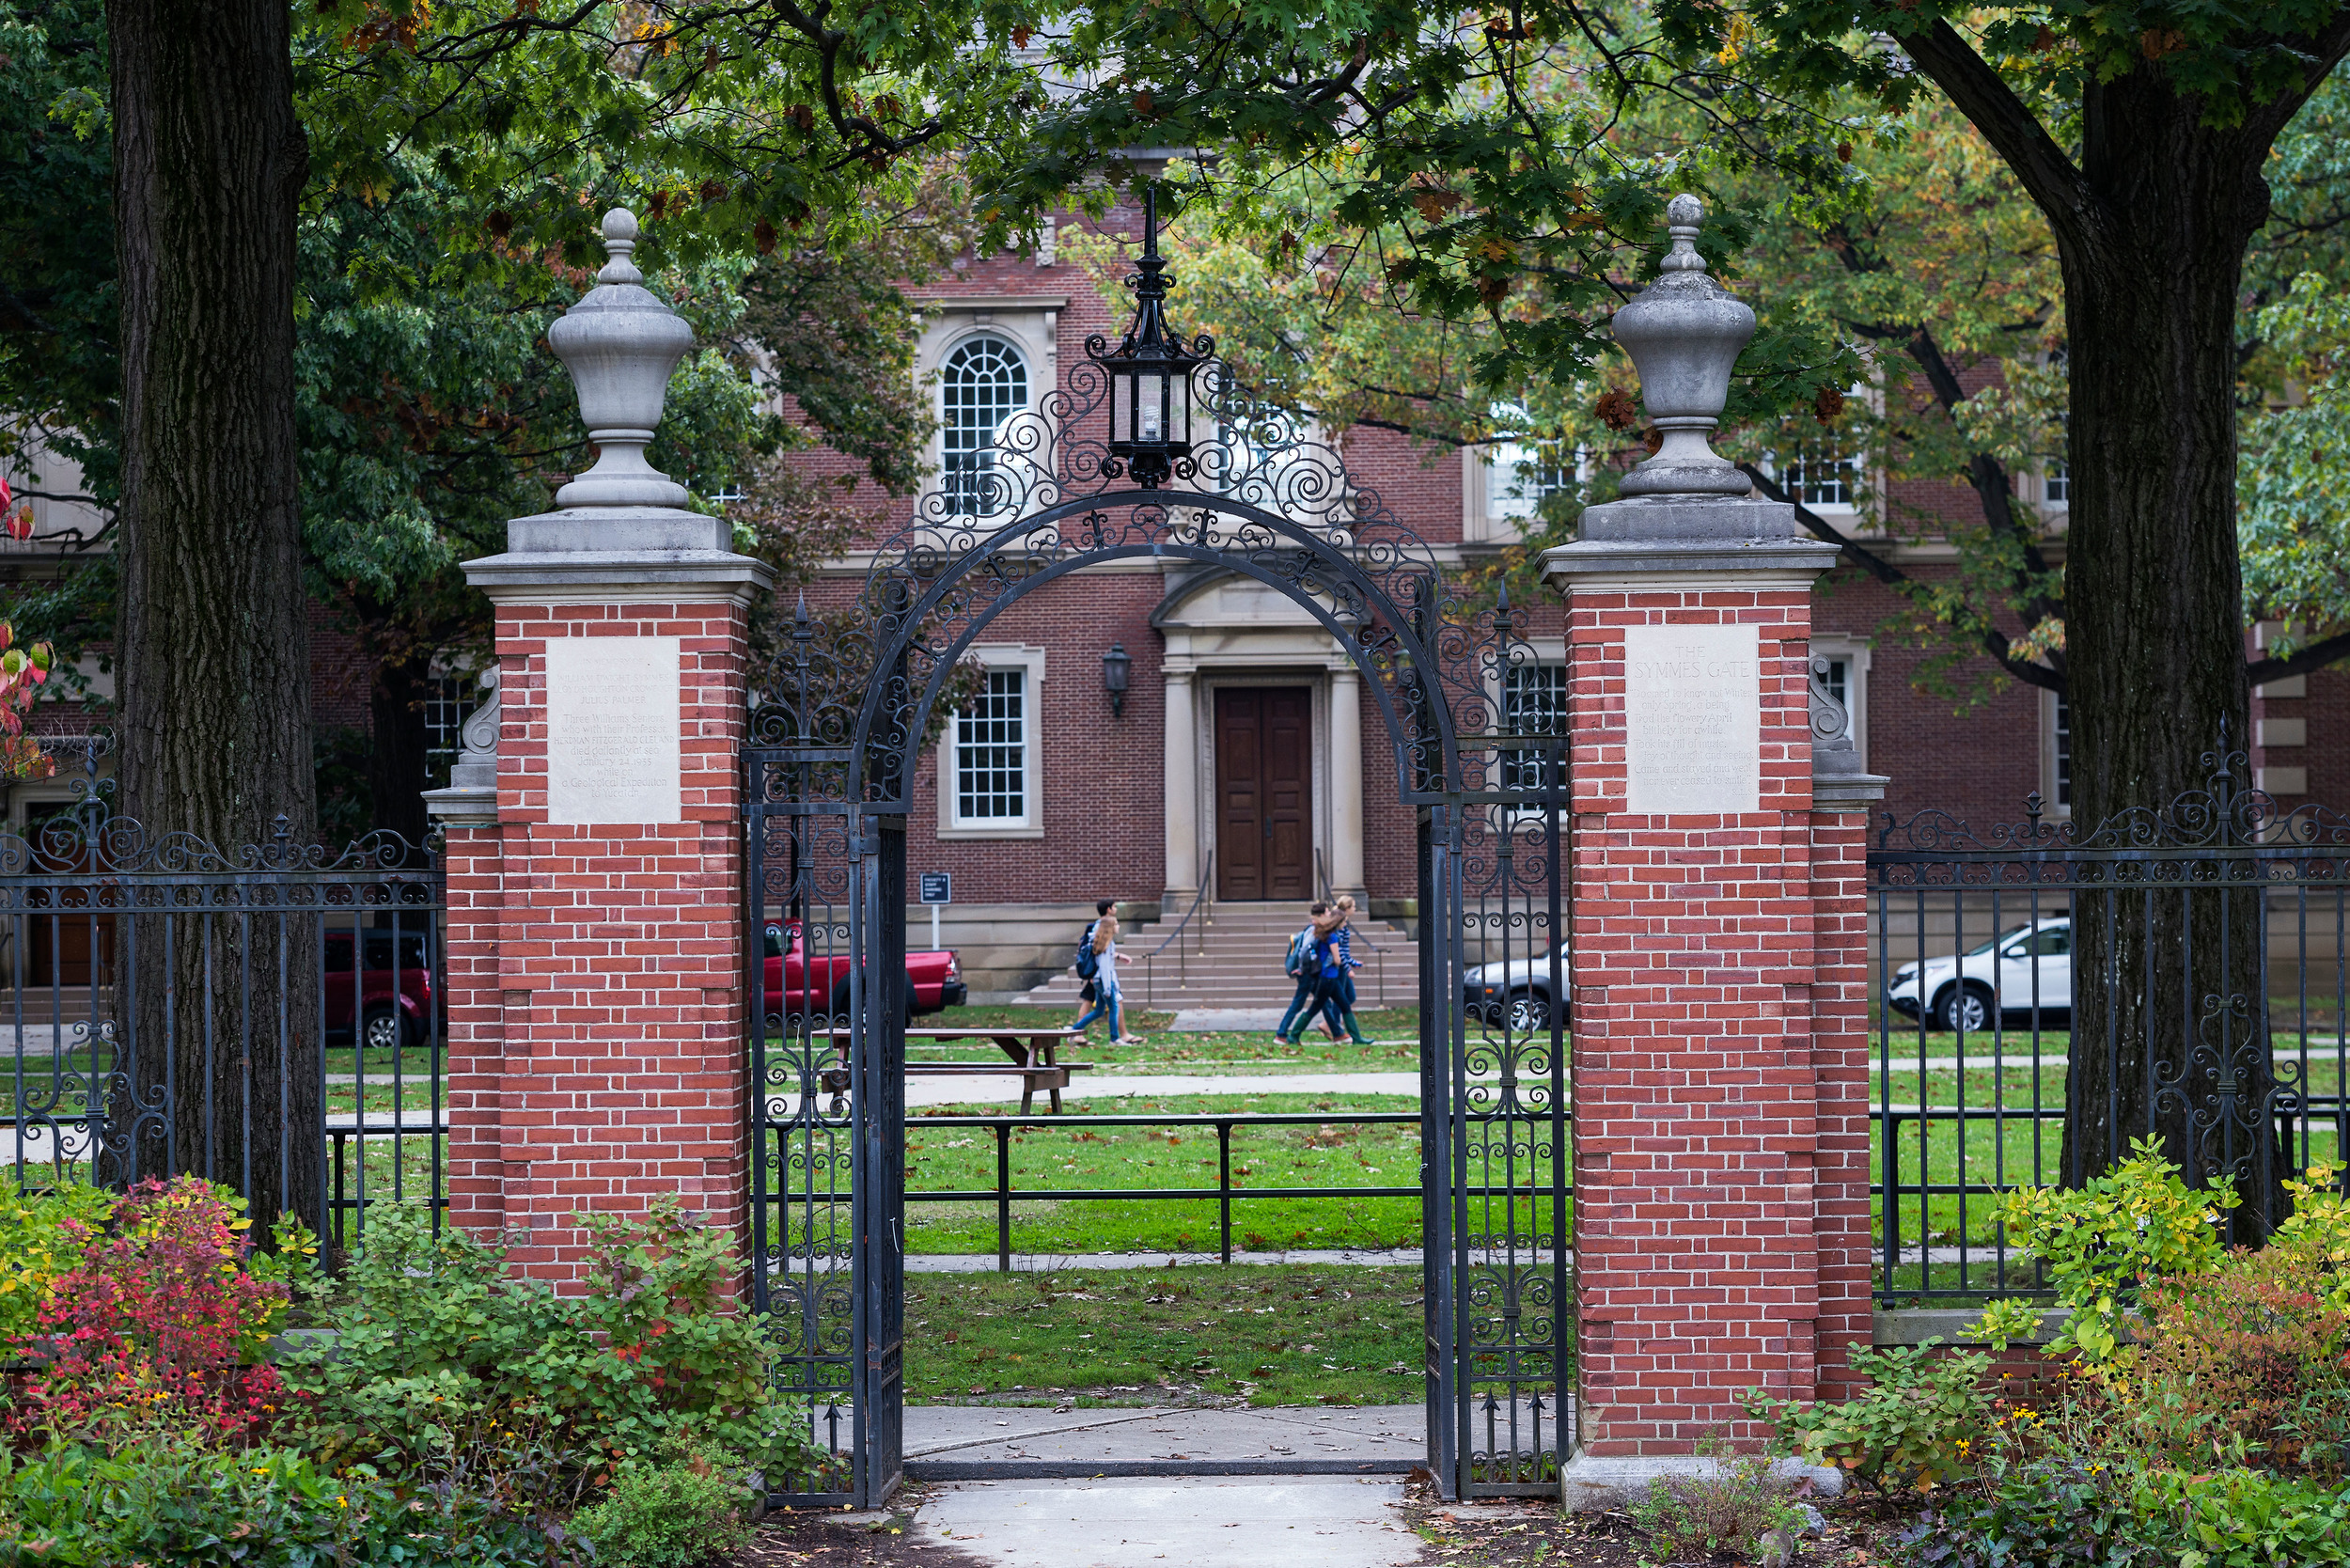 U.S. News & World Report's list of best colleges for 2015 ...